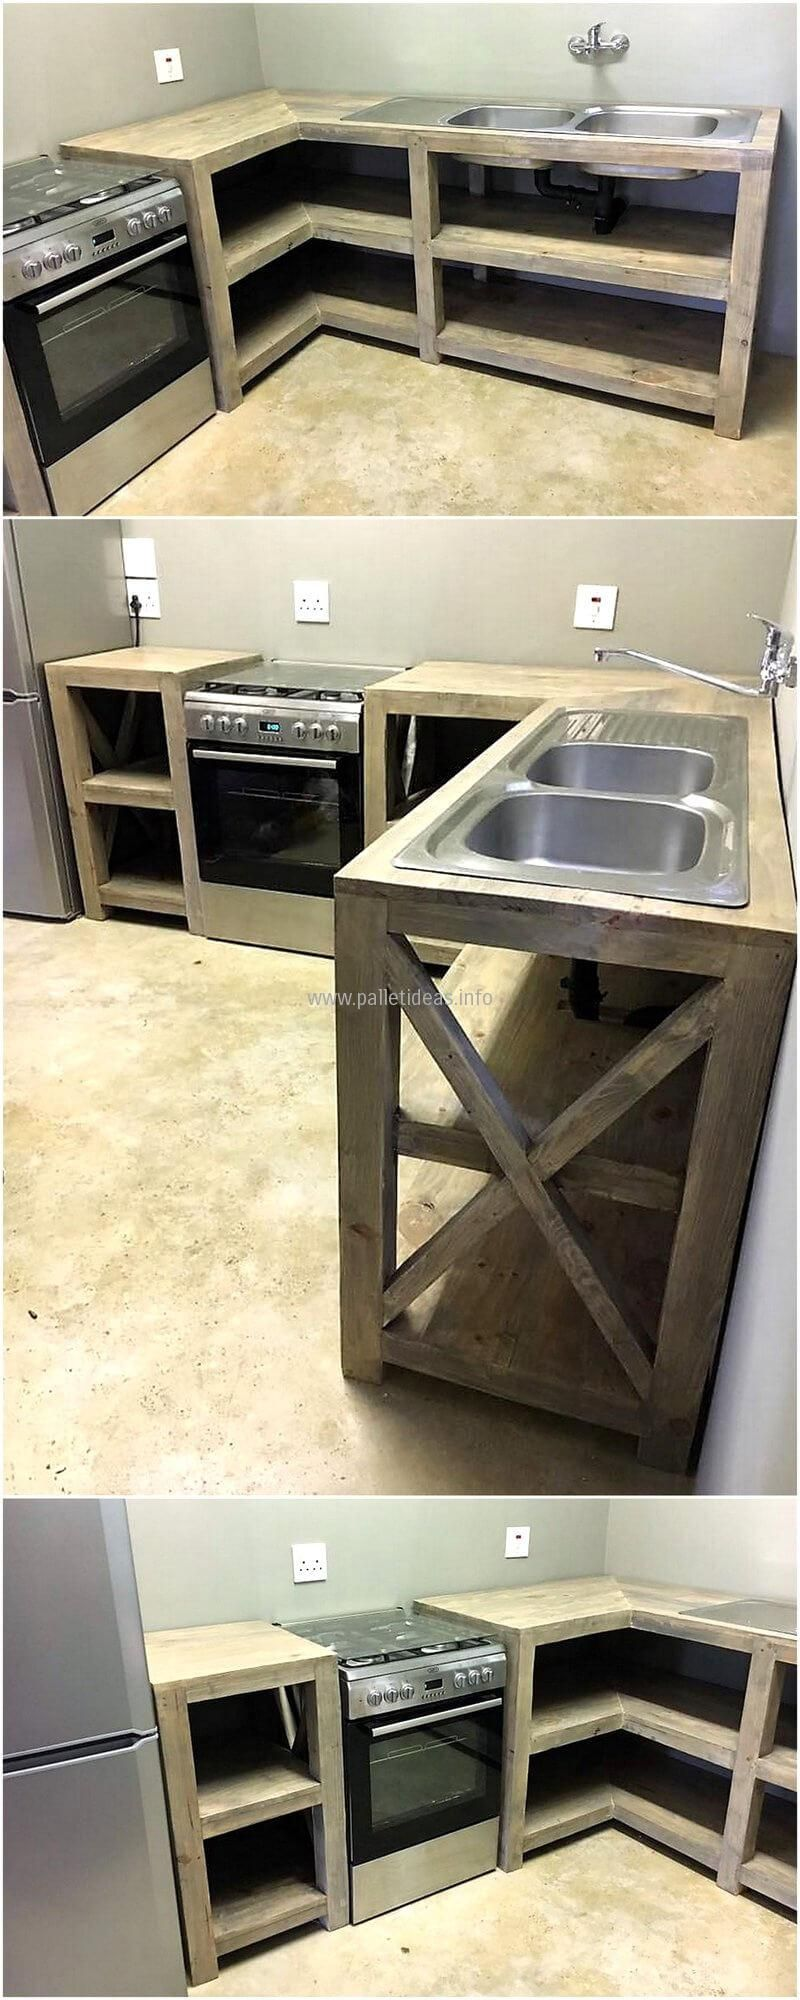 Recycled Wood Pallet Kitchen Idea Faca Voce Mesmo Cozinha